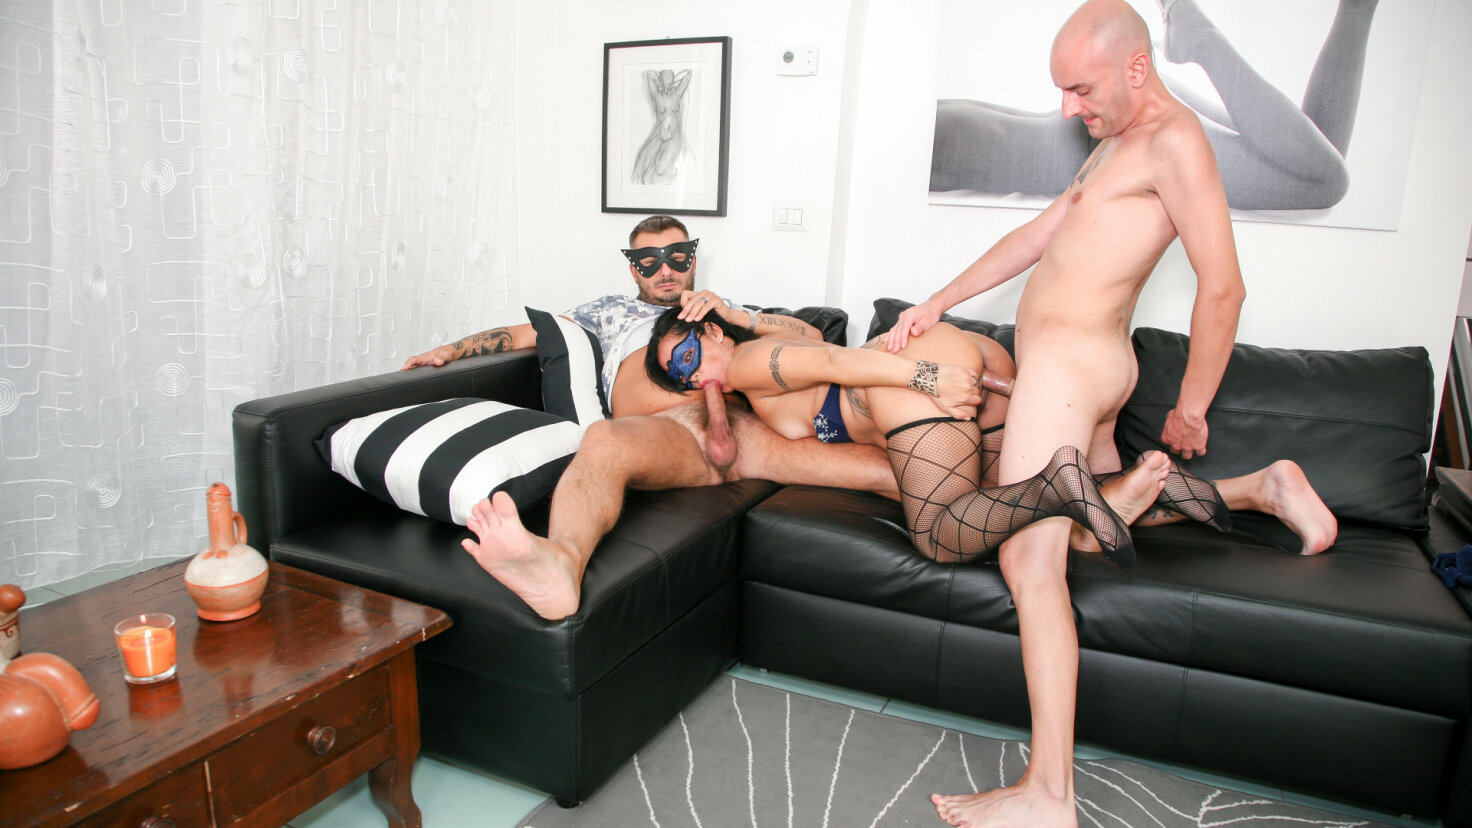 Mature Italian amateur gets two cumloads on tits in raunchy MMF threesome